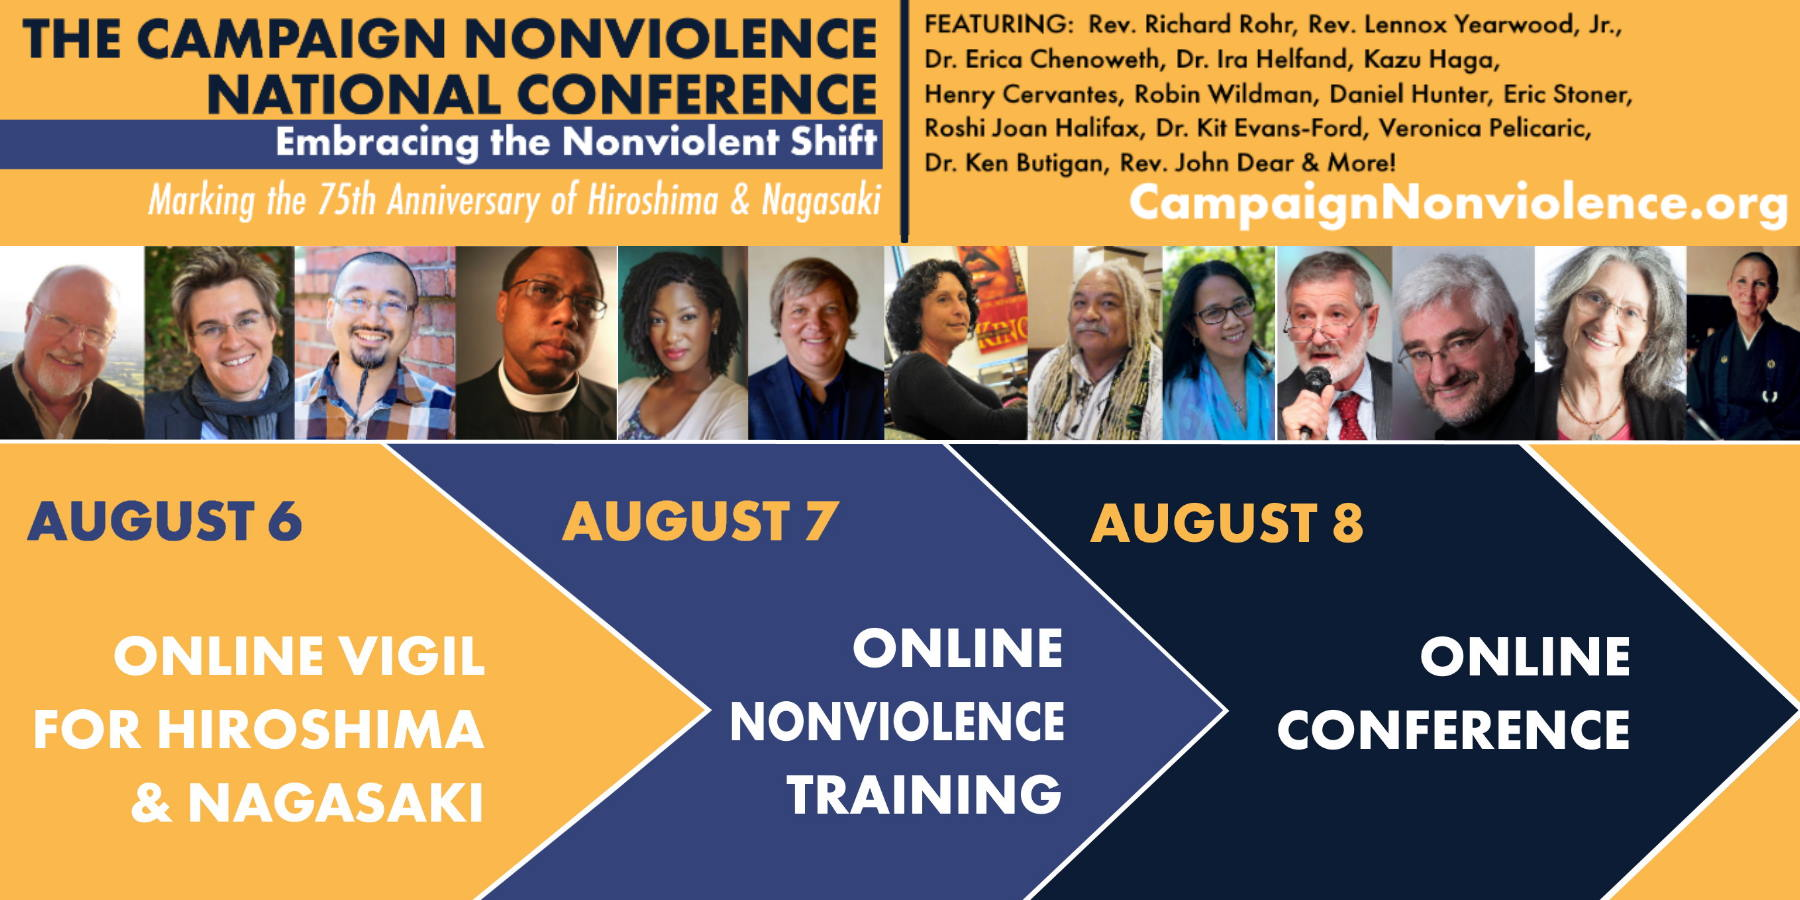 All you need to know about the Campaign Nonviolence Conference events August 6-8, 2020